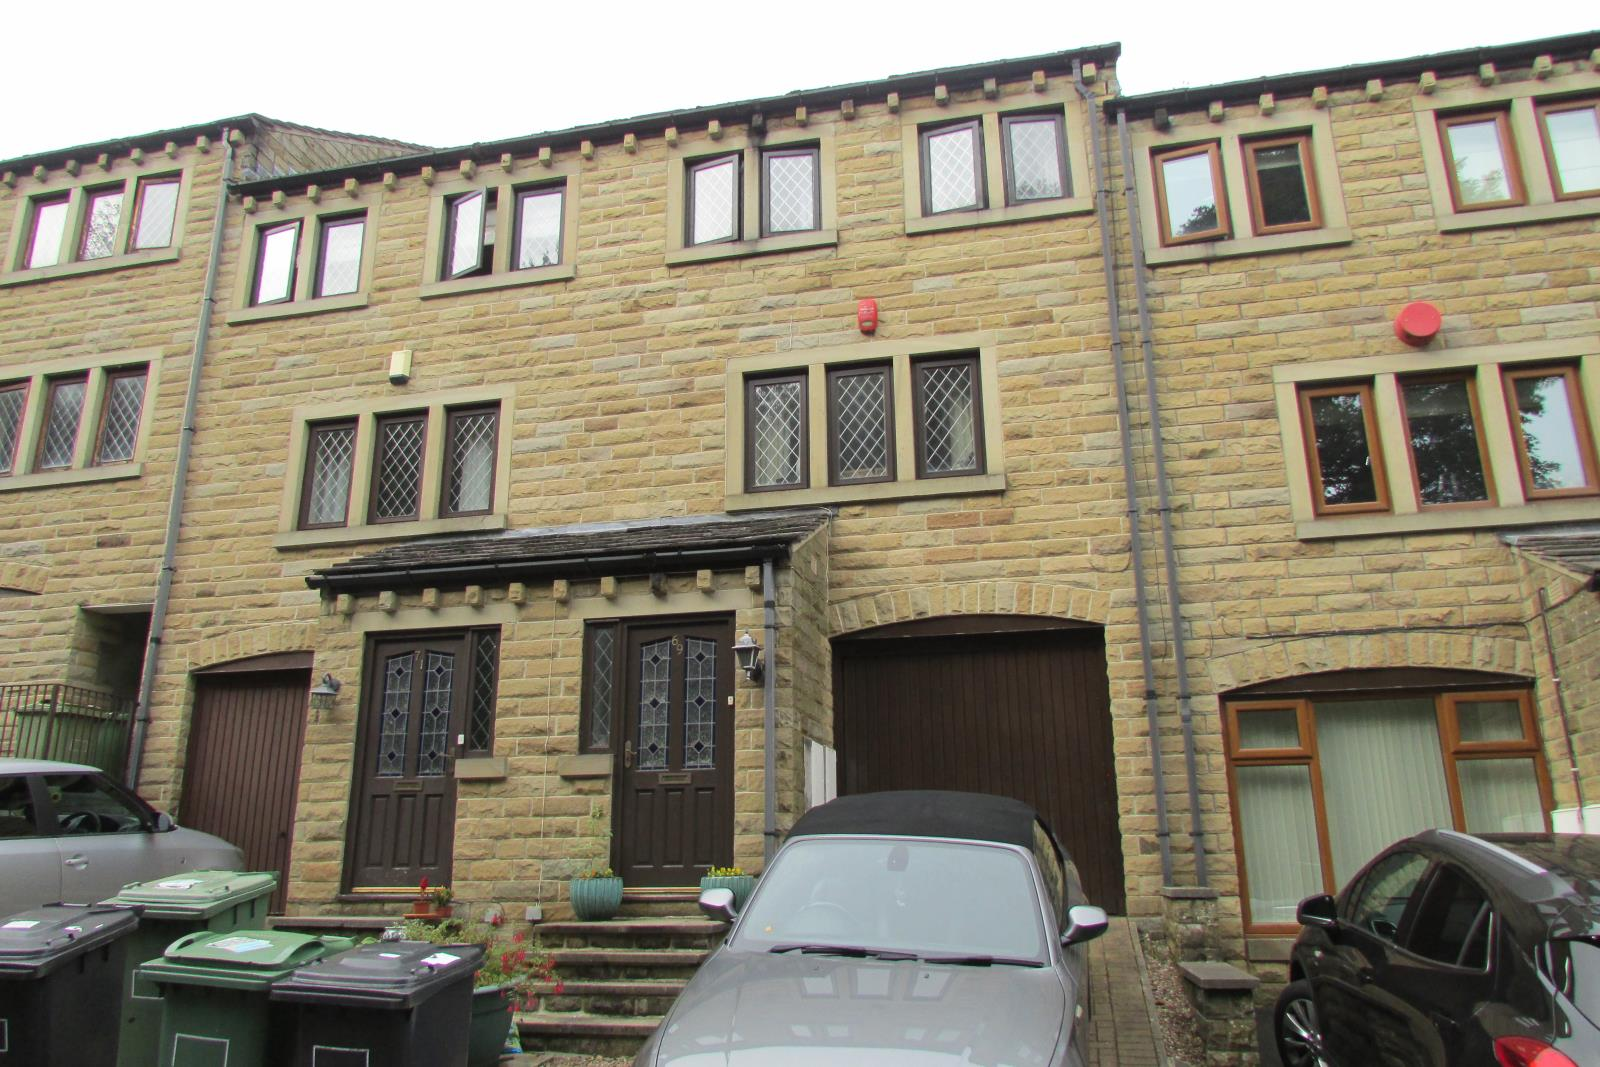 69 Dean Brook Road, Netherthong, Holmfirth HD9 3UF